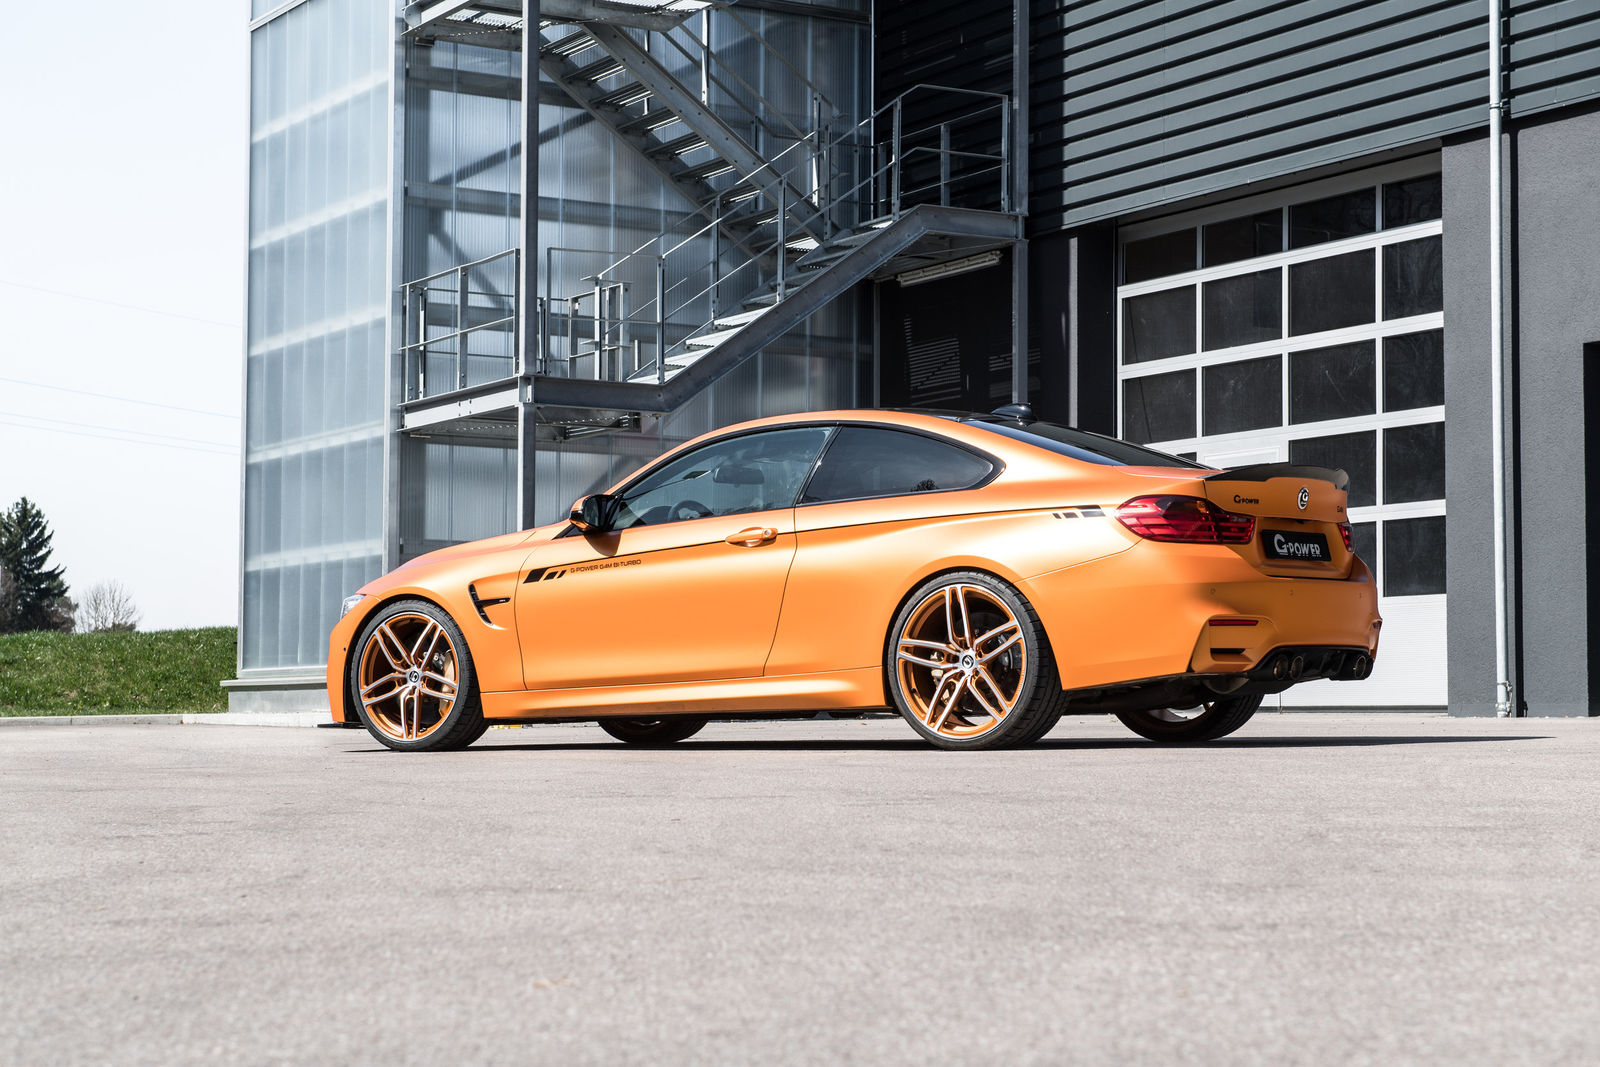 G-Power BMW M4 670 hp -2